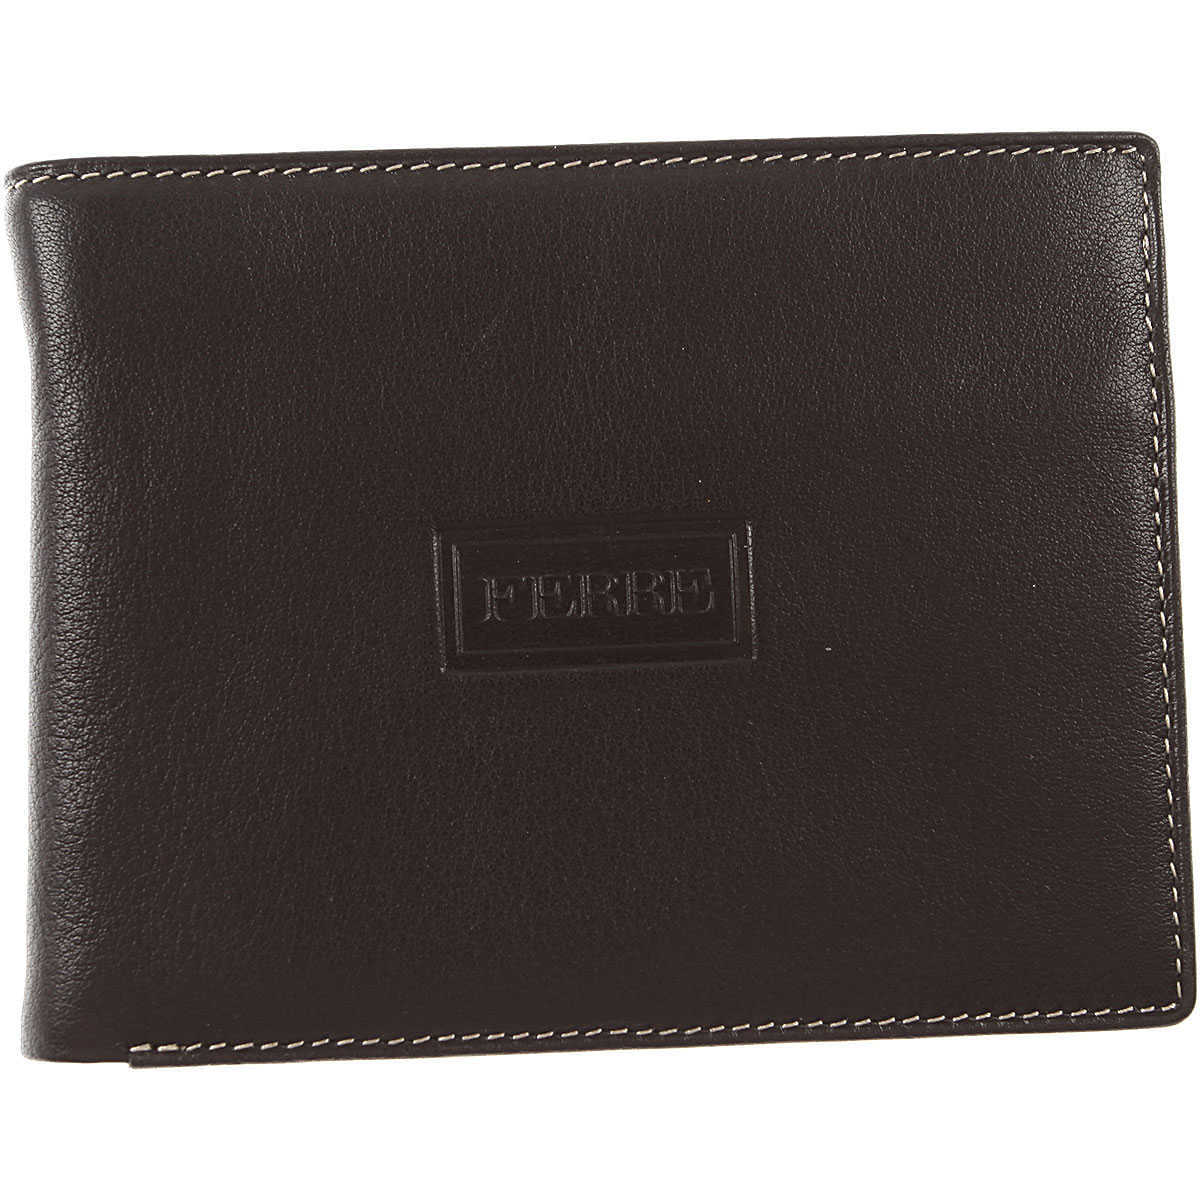 Gianfranco Ferre Wallet for Men On Sale in Outlet Black - GOOFASH